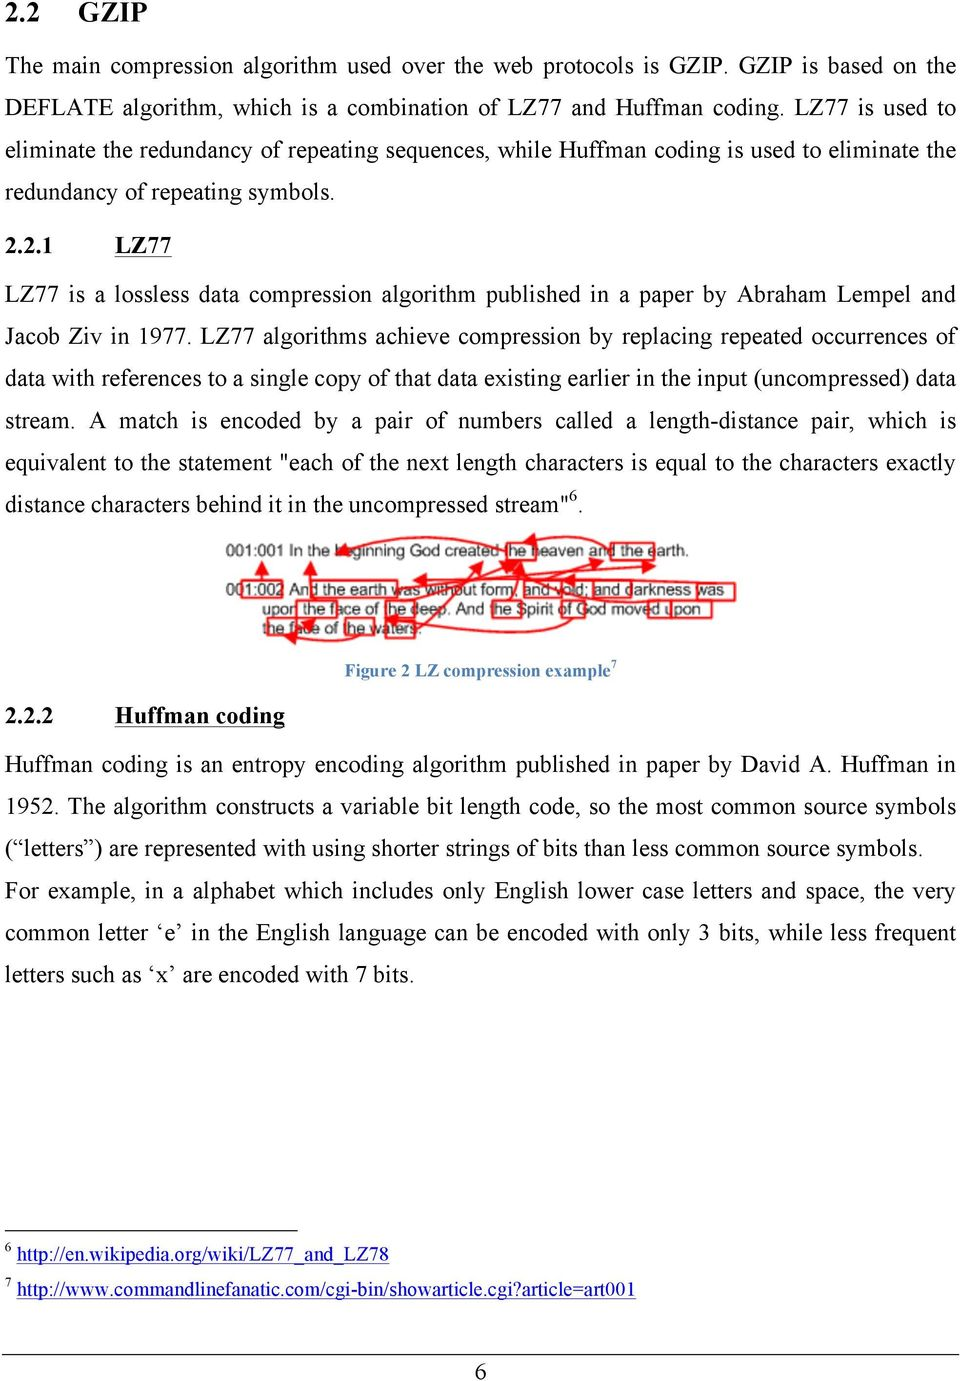 2.1 LZ77 LZ77 is a lossless data compression algorithm published in a paper by Abraham Lempel and Jacob Ziv in 1977.